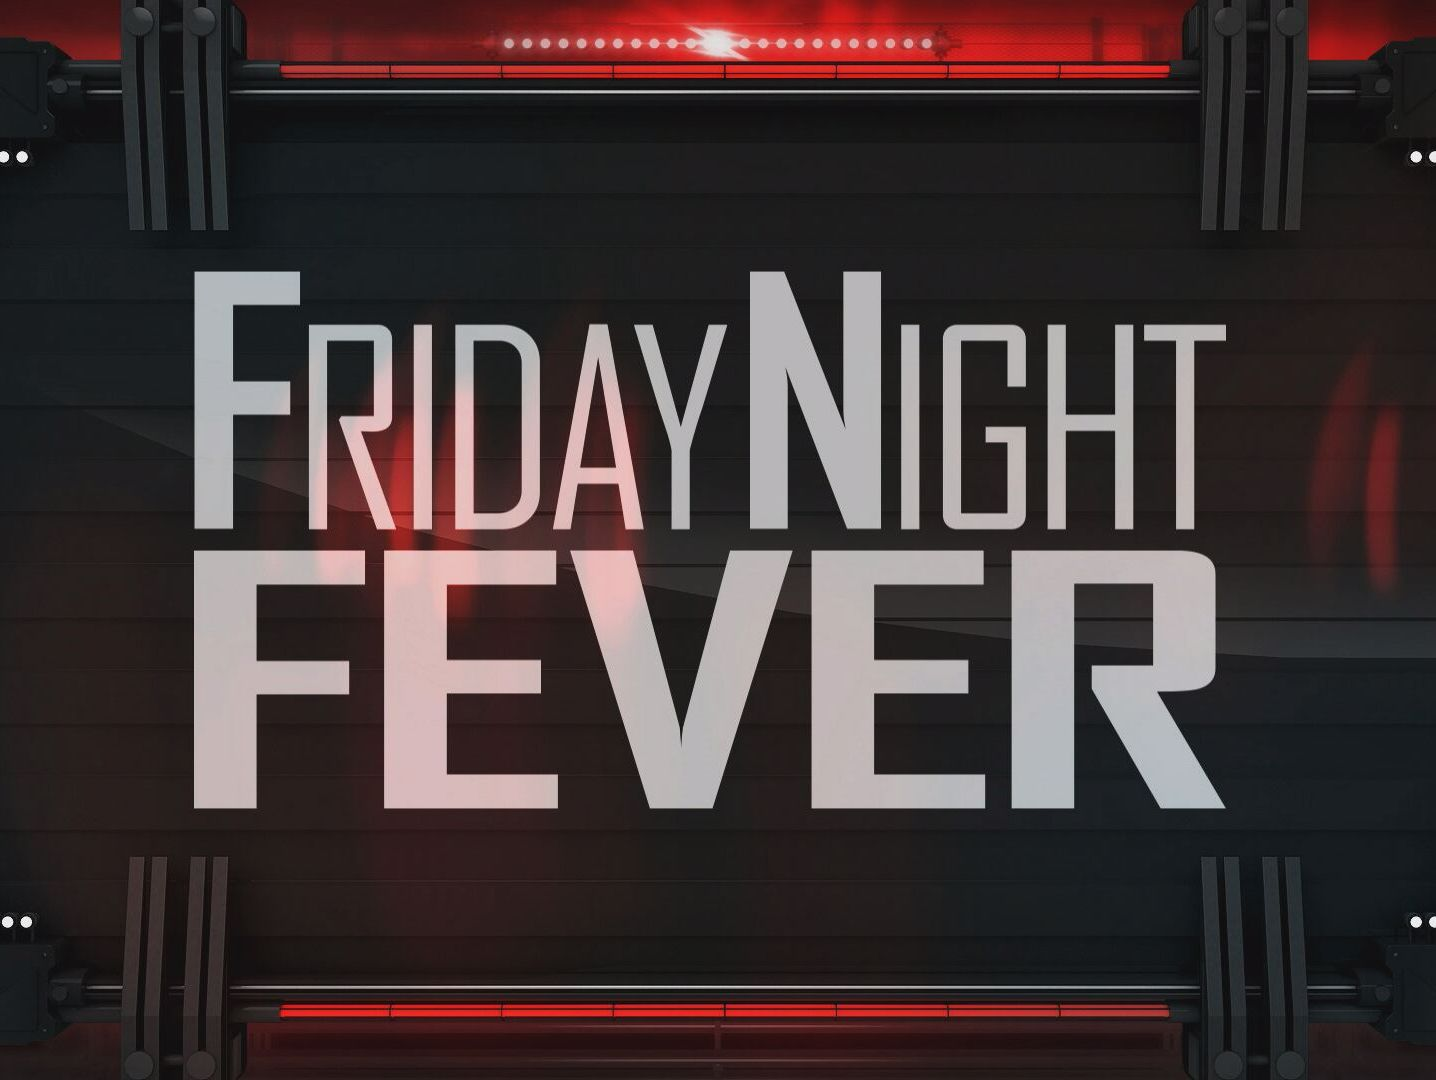 2015 Friday Night Fever logo